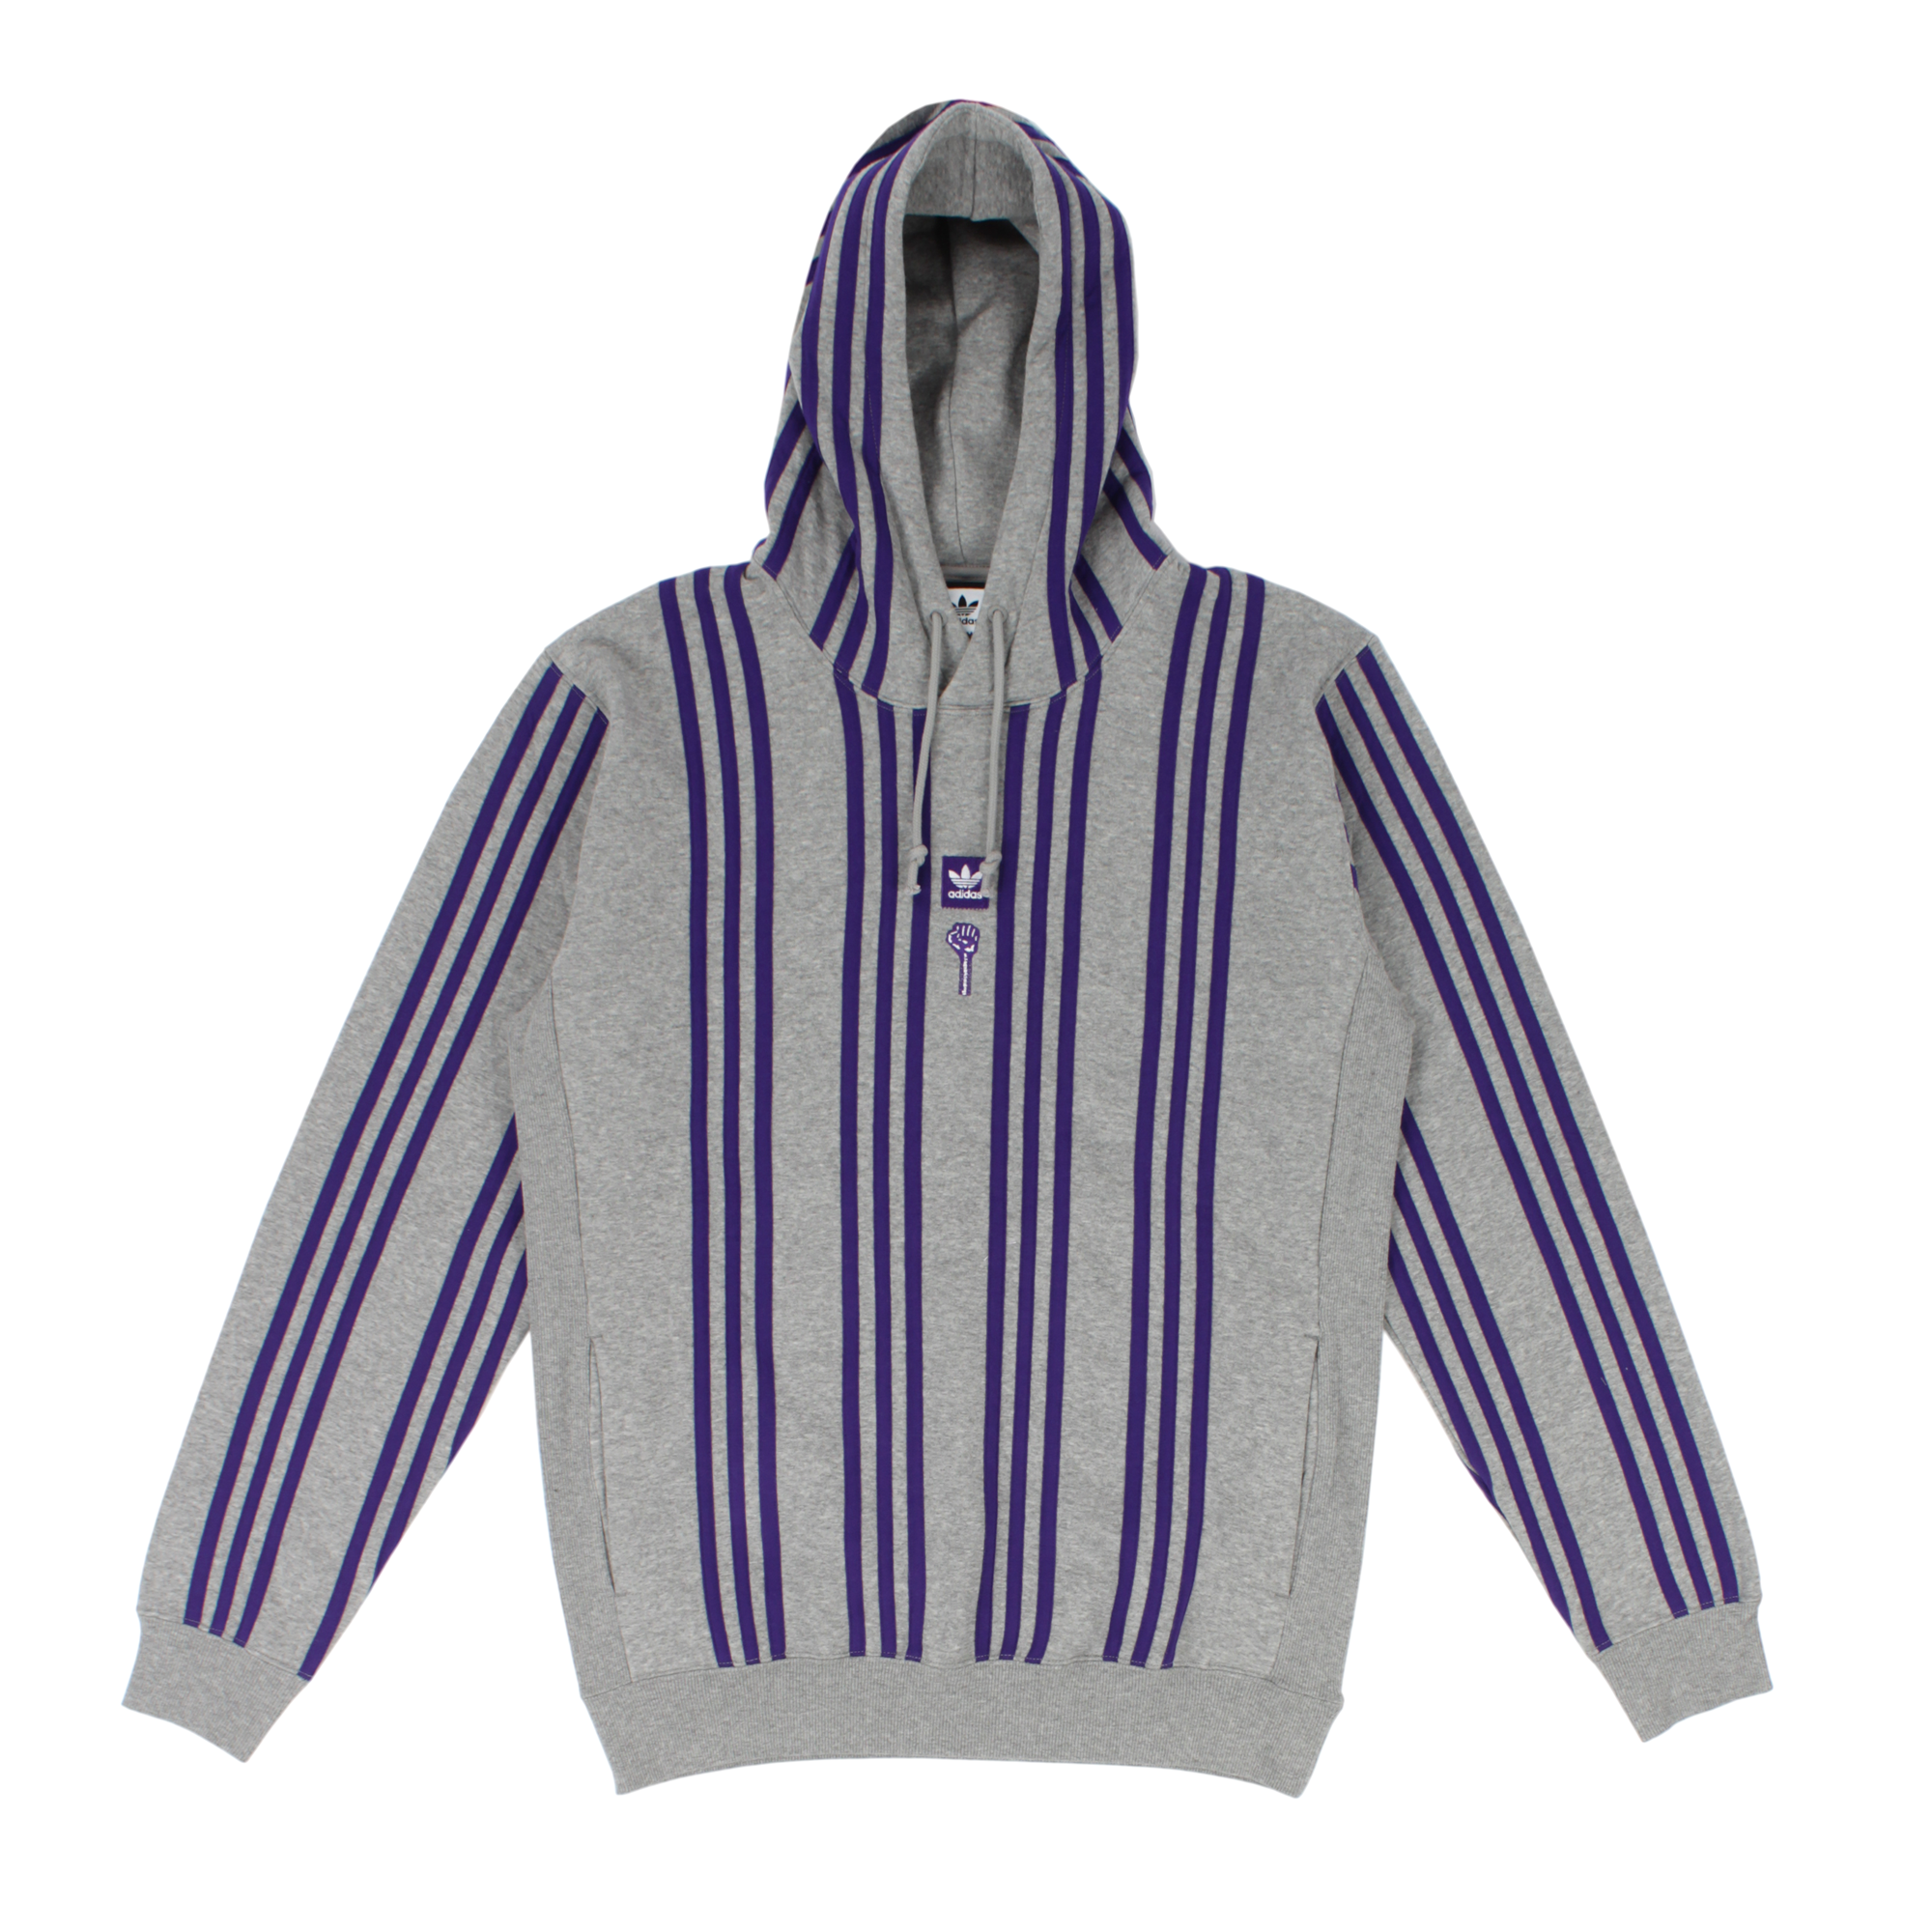 Adidas X Hardies Hoodie Product Photo #1